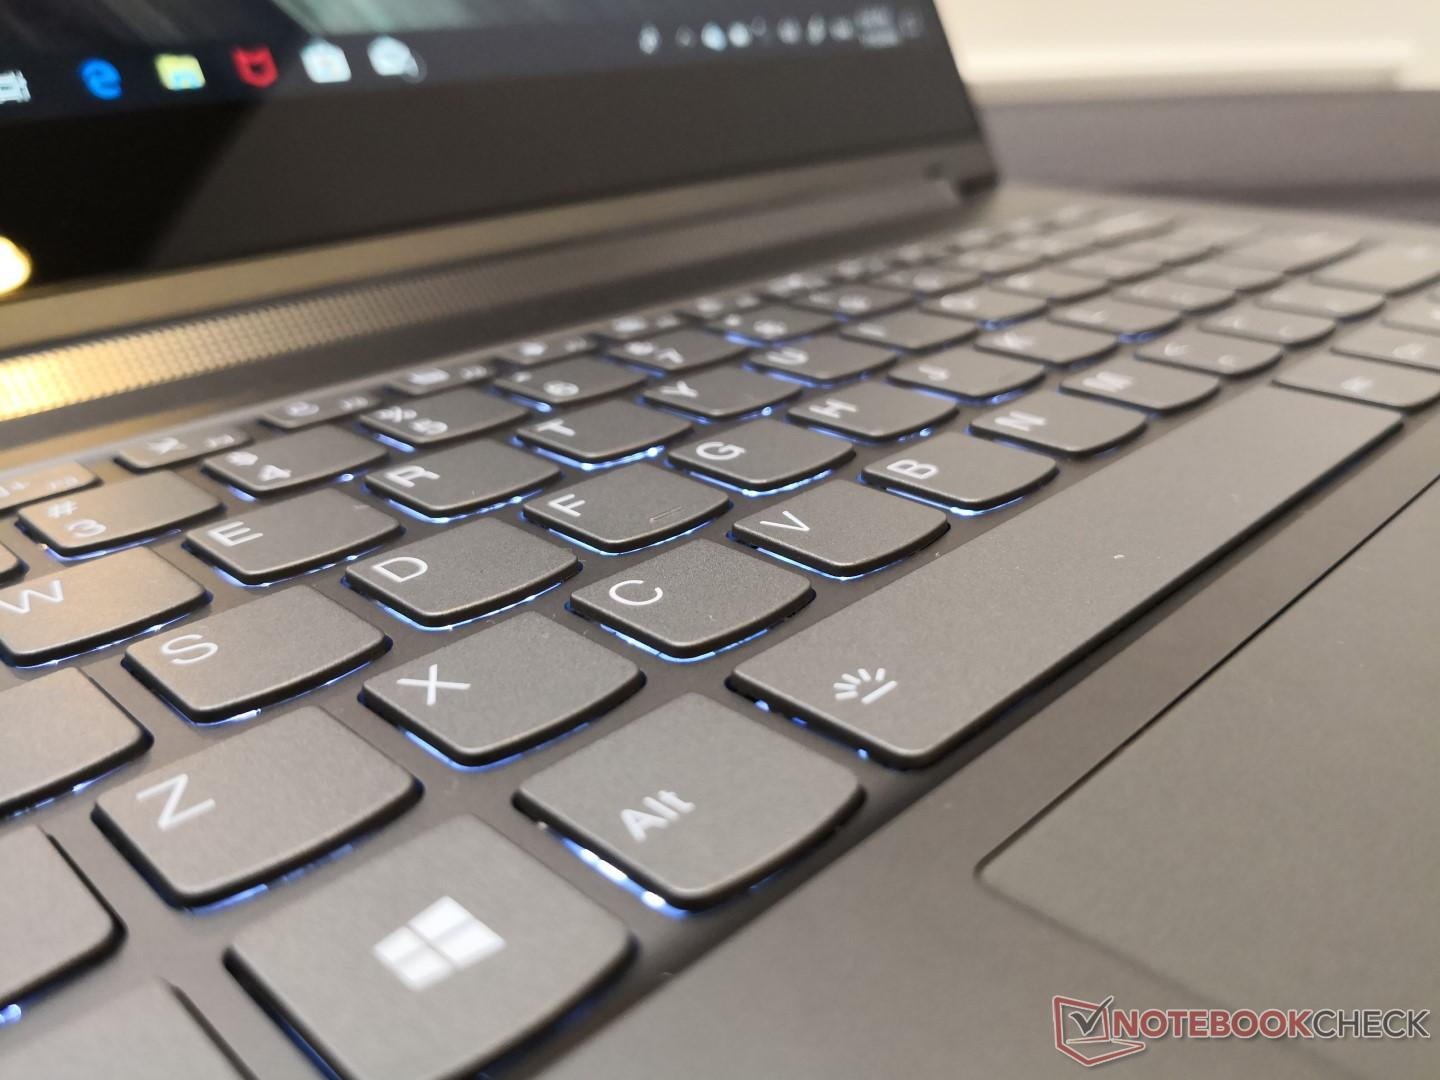 Watchband no more — Lenovo Yoga C930 convertible is ditching the